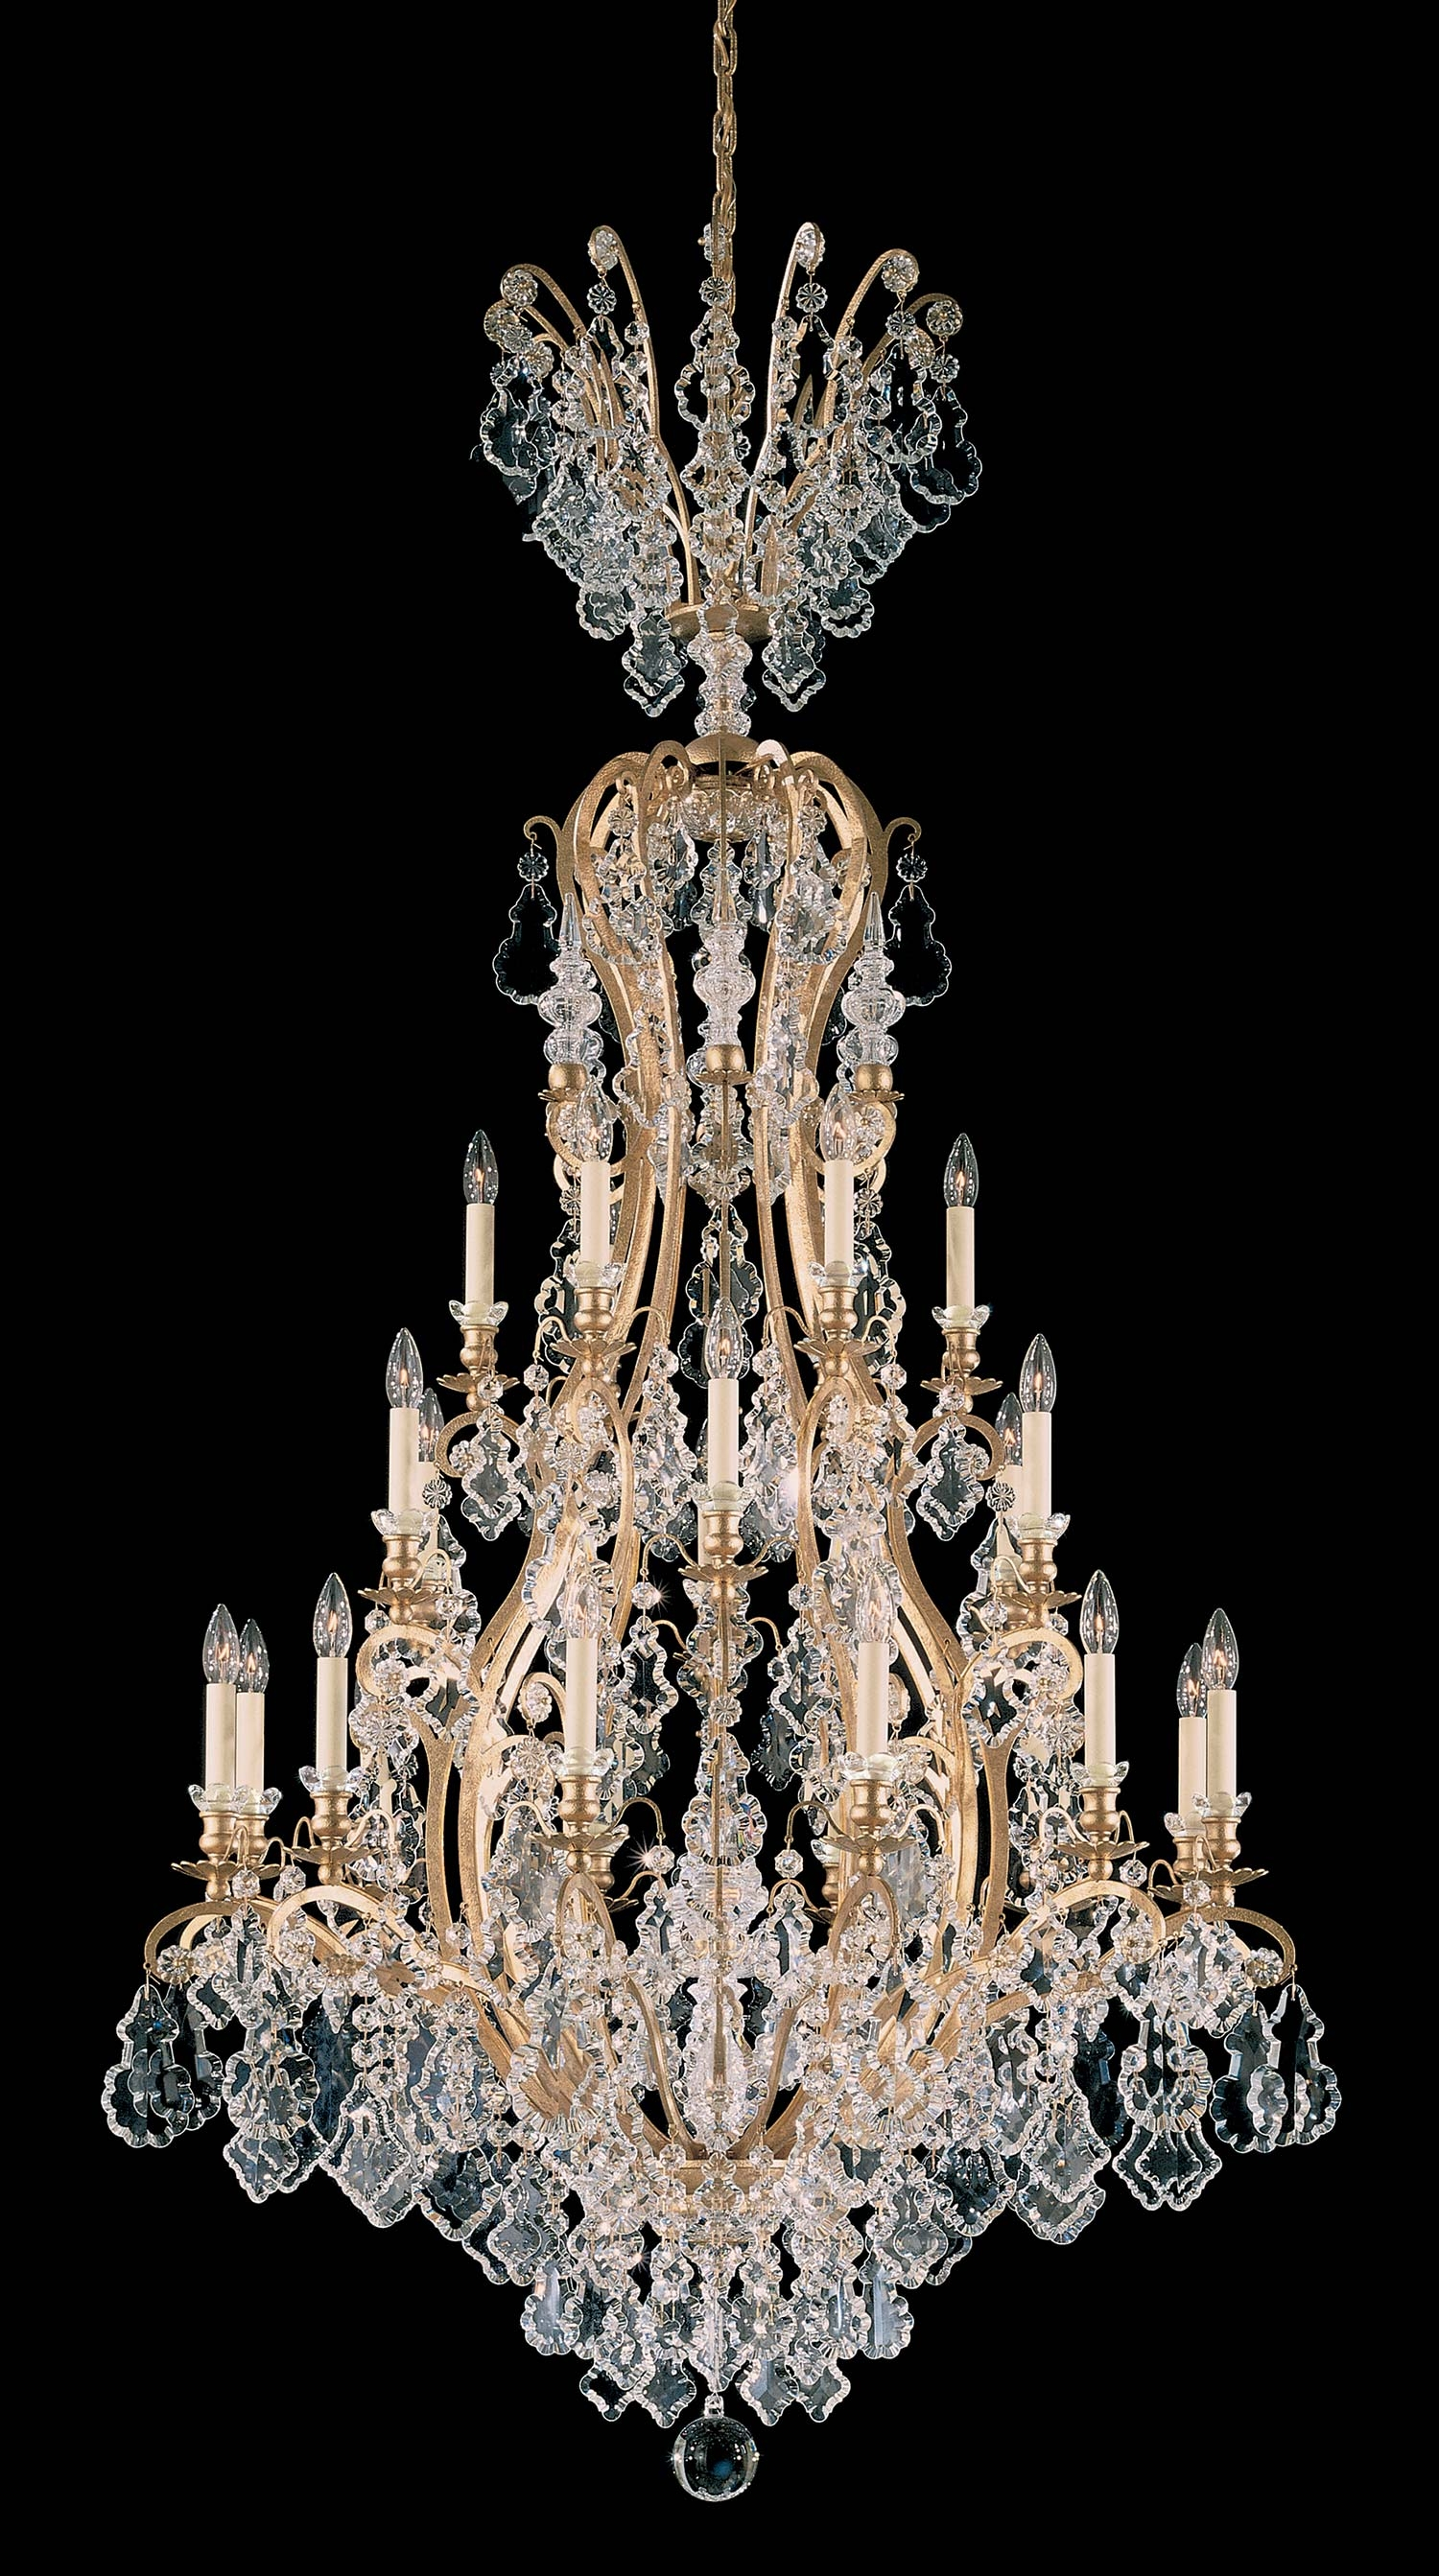 Schonbek 2774 Versailles Collection Chandelier Crystal Traditional Throughout Baroque Chandelier (Image 12 of 15)